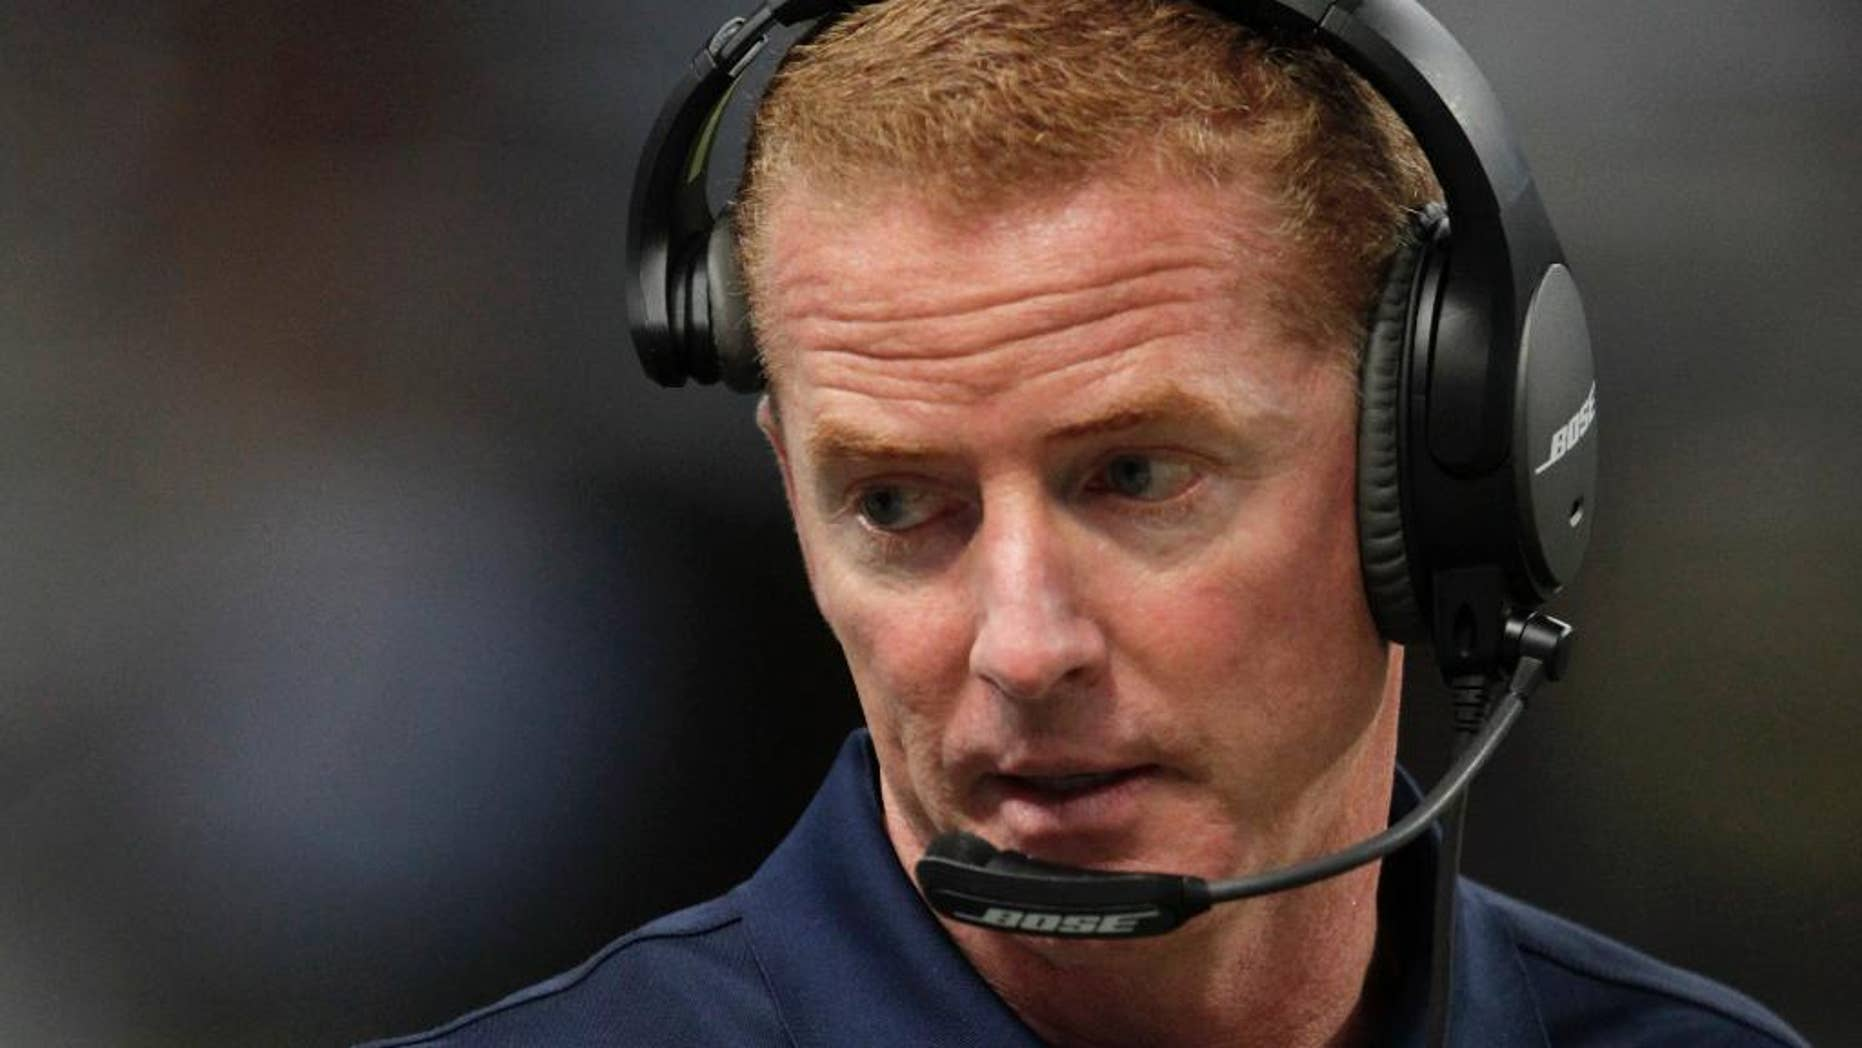 FILE - In this Sept. 21, 2014, file photo, Dallas Cowboys head coach Jason Garrett watches from the sidelines during the third quarter of an NFL football game against the St. Louis Rams in St. Louis. The Dallas Cowboys overcame a 21-point deficit to win in regulation for the first time in team history. (AP Photo/Tom Gannam, File)